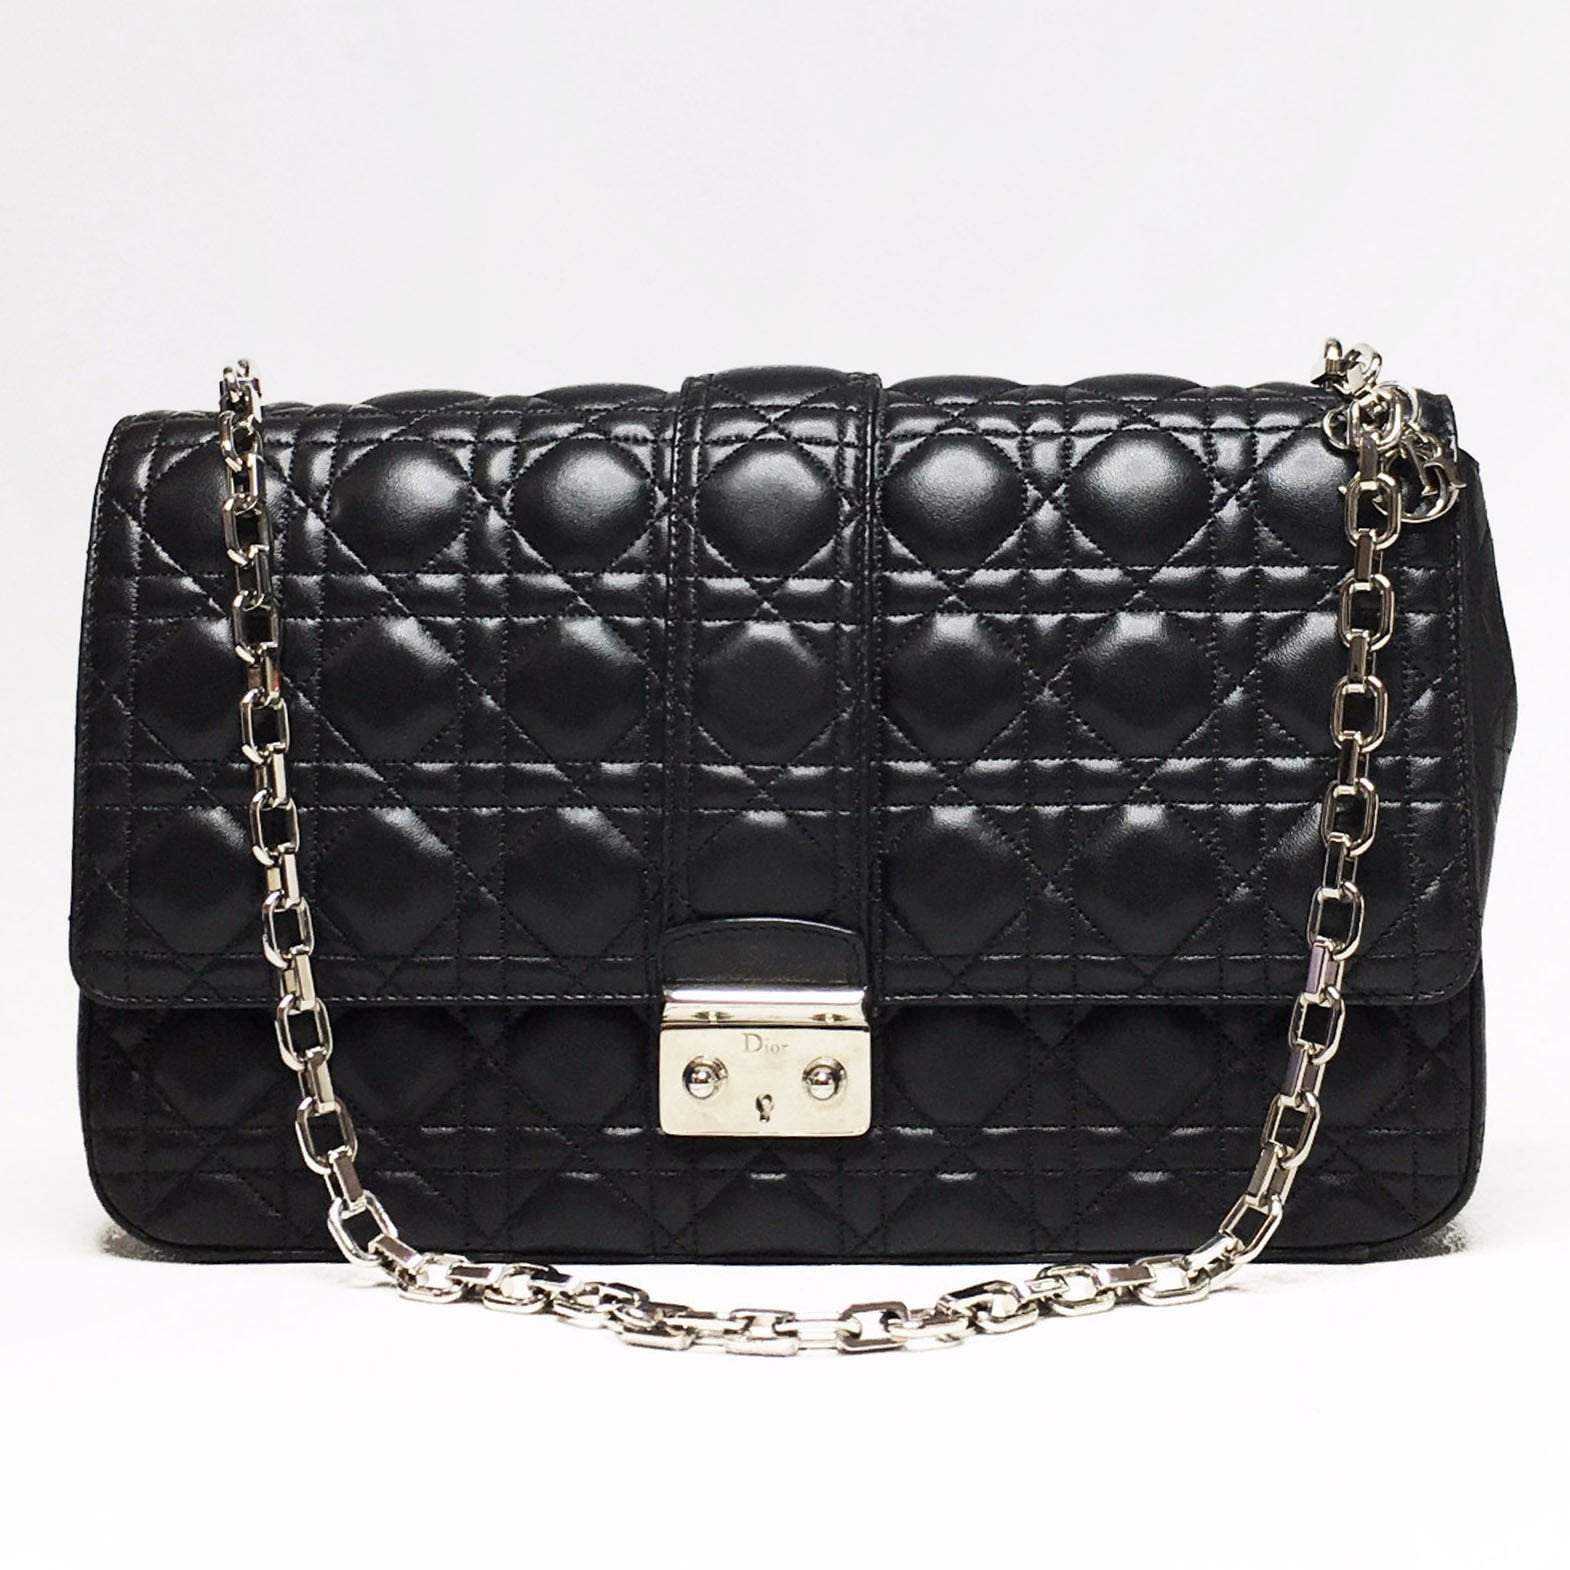 Christian Dior Black Cannage Quilted Lambskin Leather Miss Large ... 7f037b4846a95